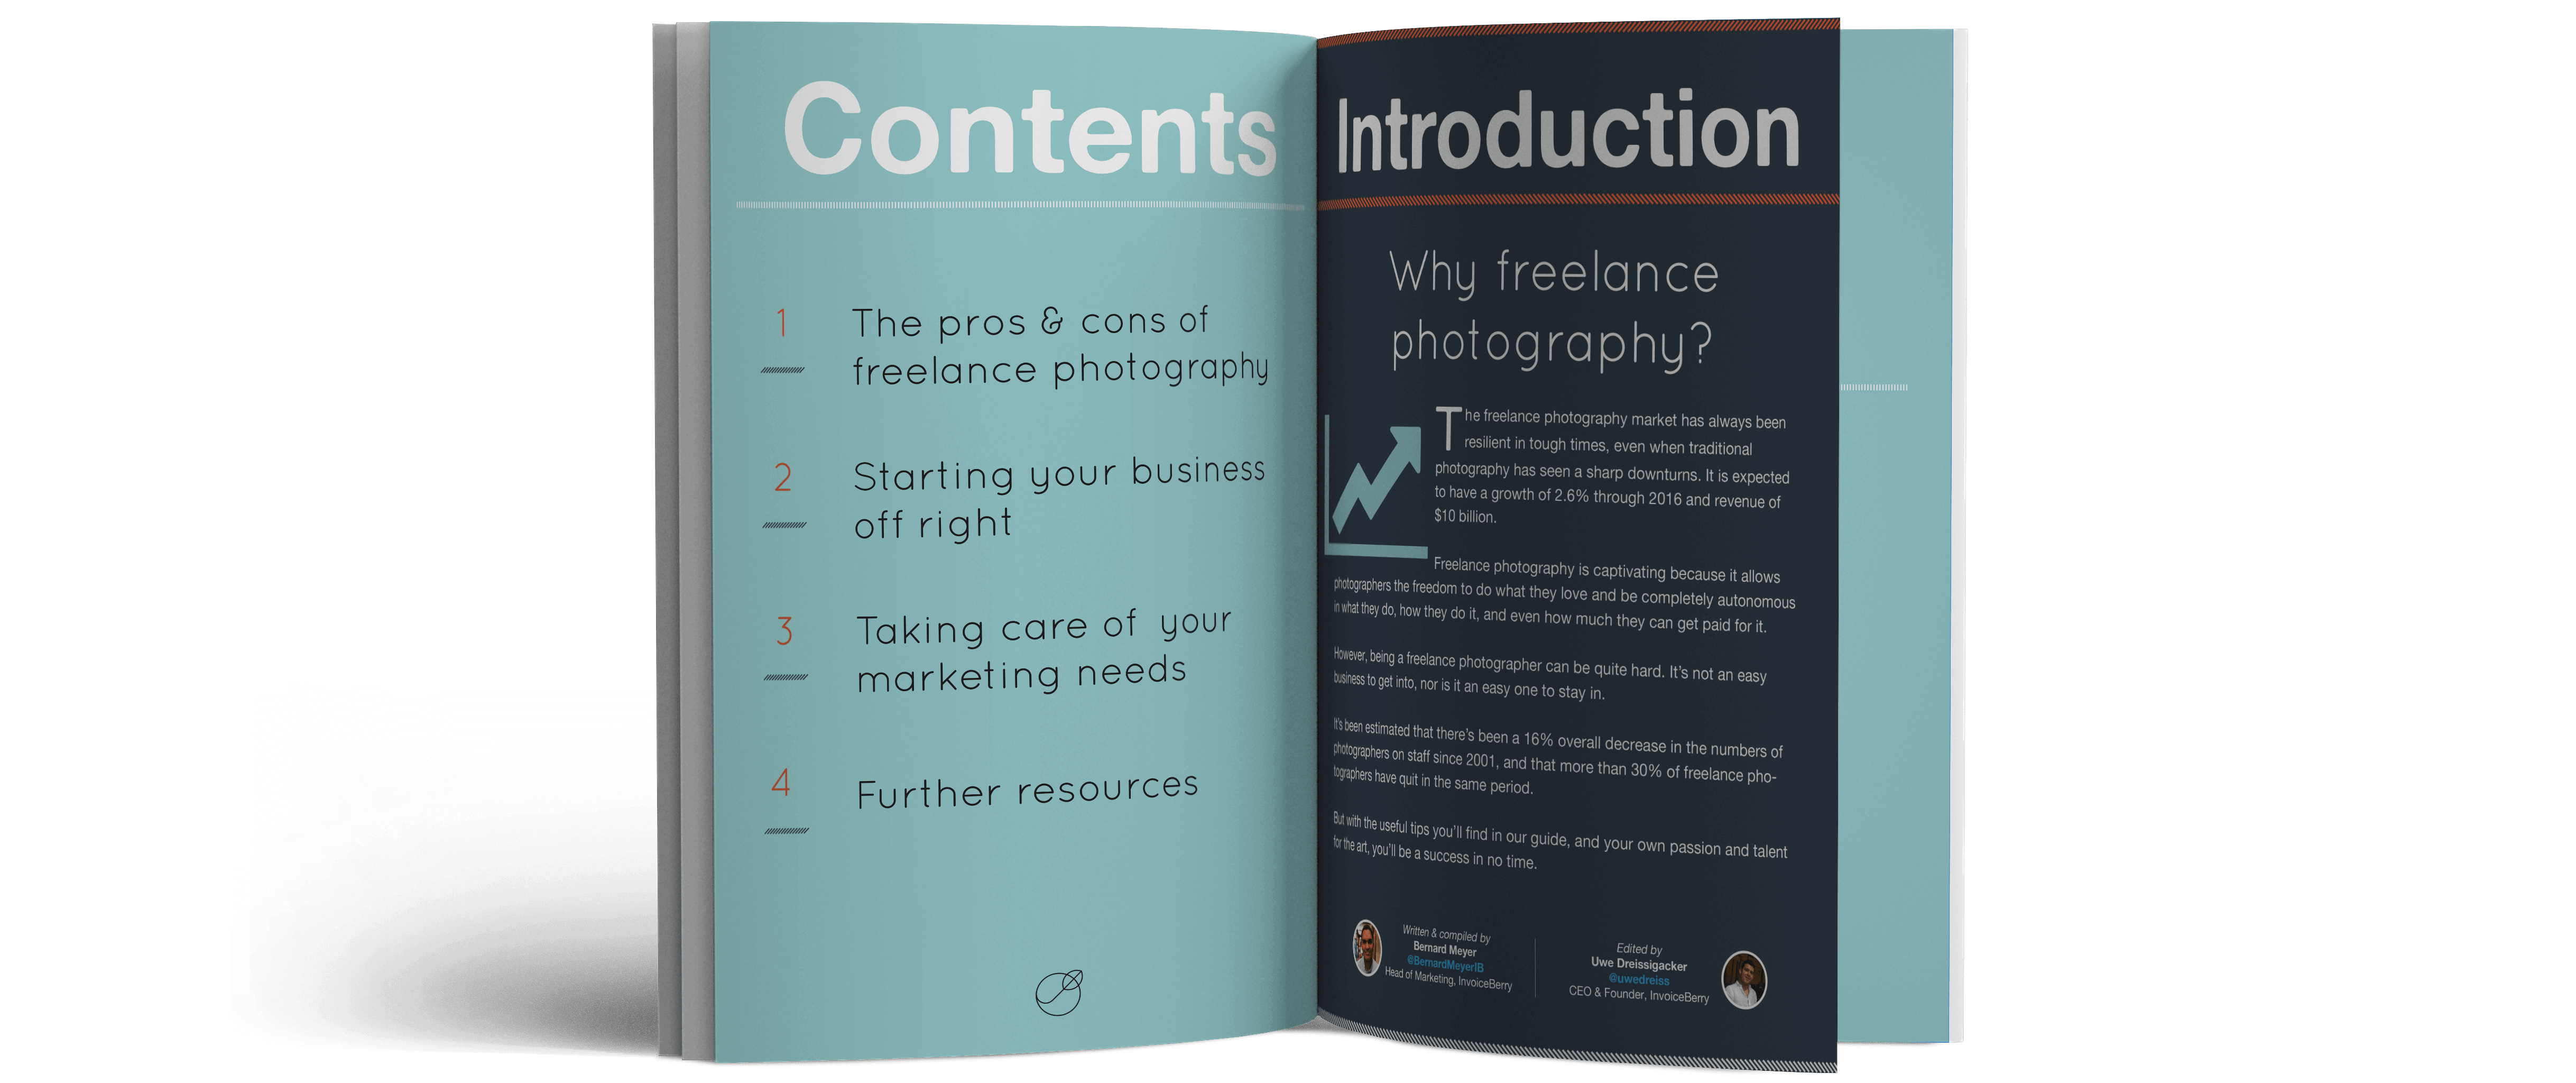 Our free photography ebook is filled with all the information you need to start your freelancing career